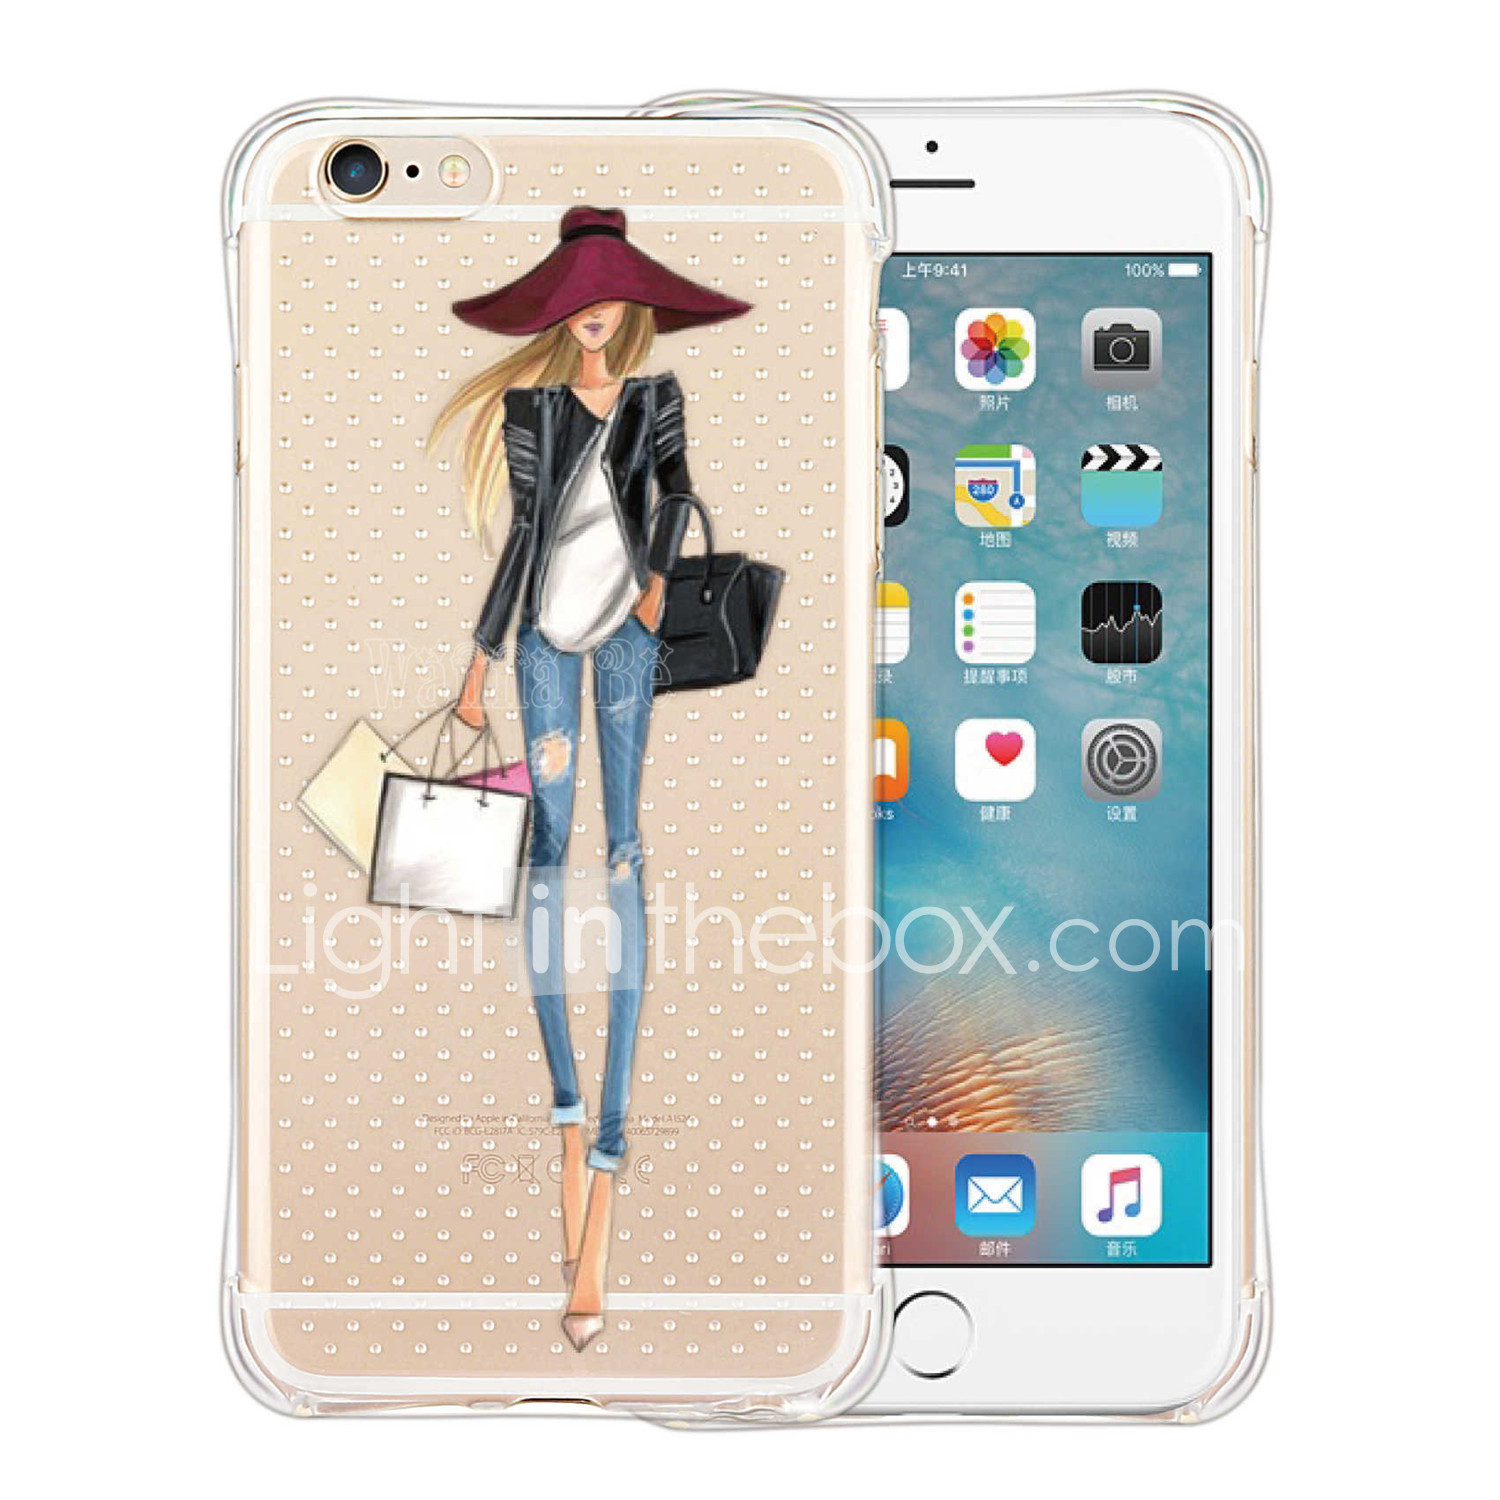 1b840927293 Funda Para iPhone 5 / Apple Funda iPhone 5 Antigolpes / Transparente ...